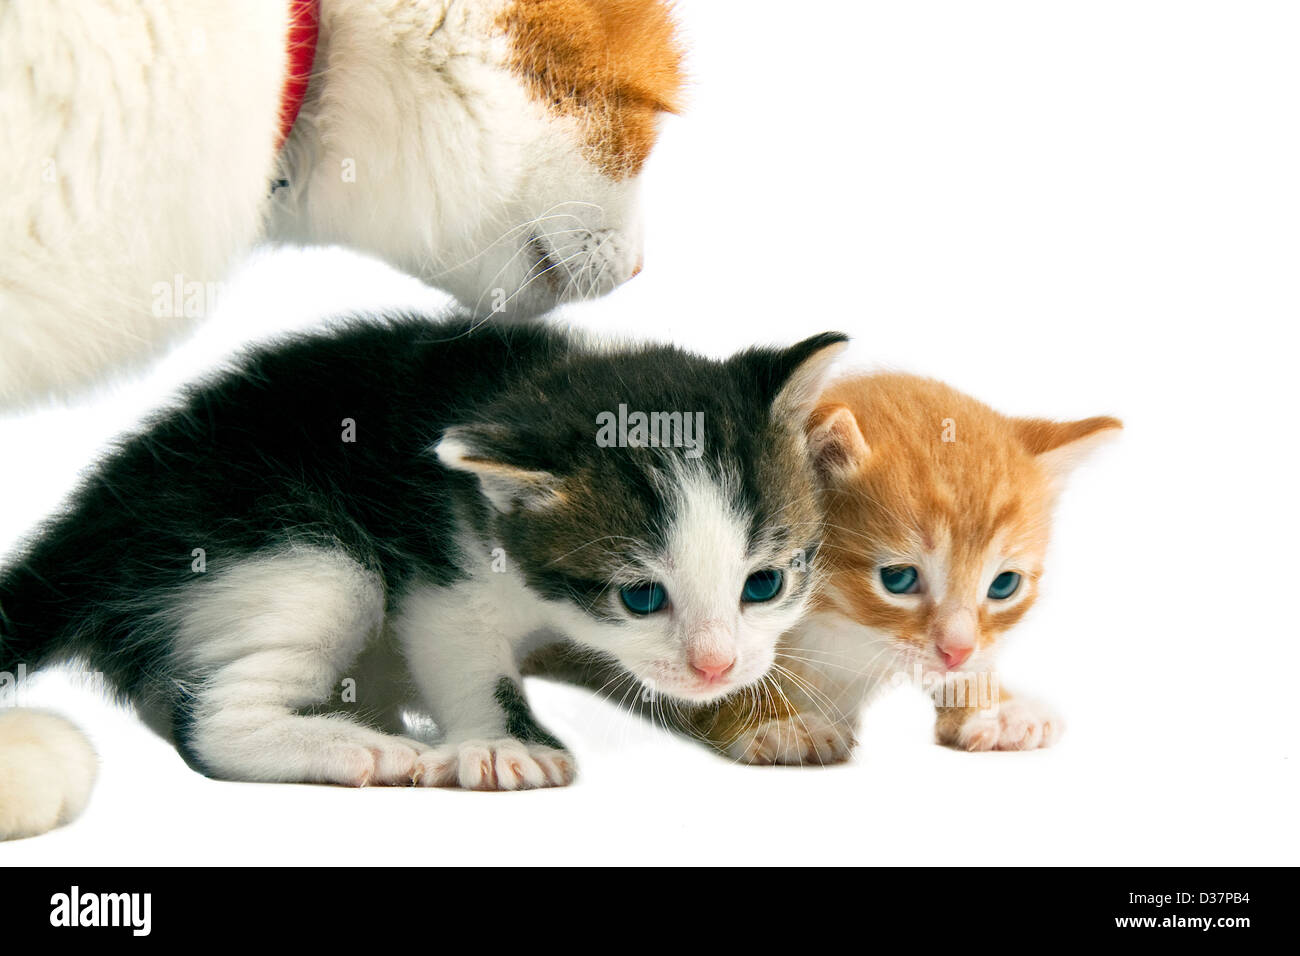 mother a cat looks after kittens - Stock Image